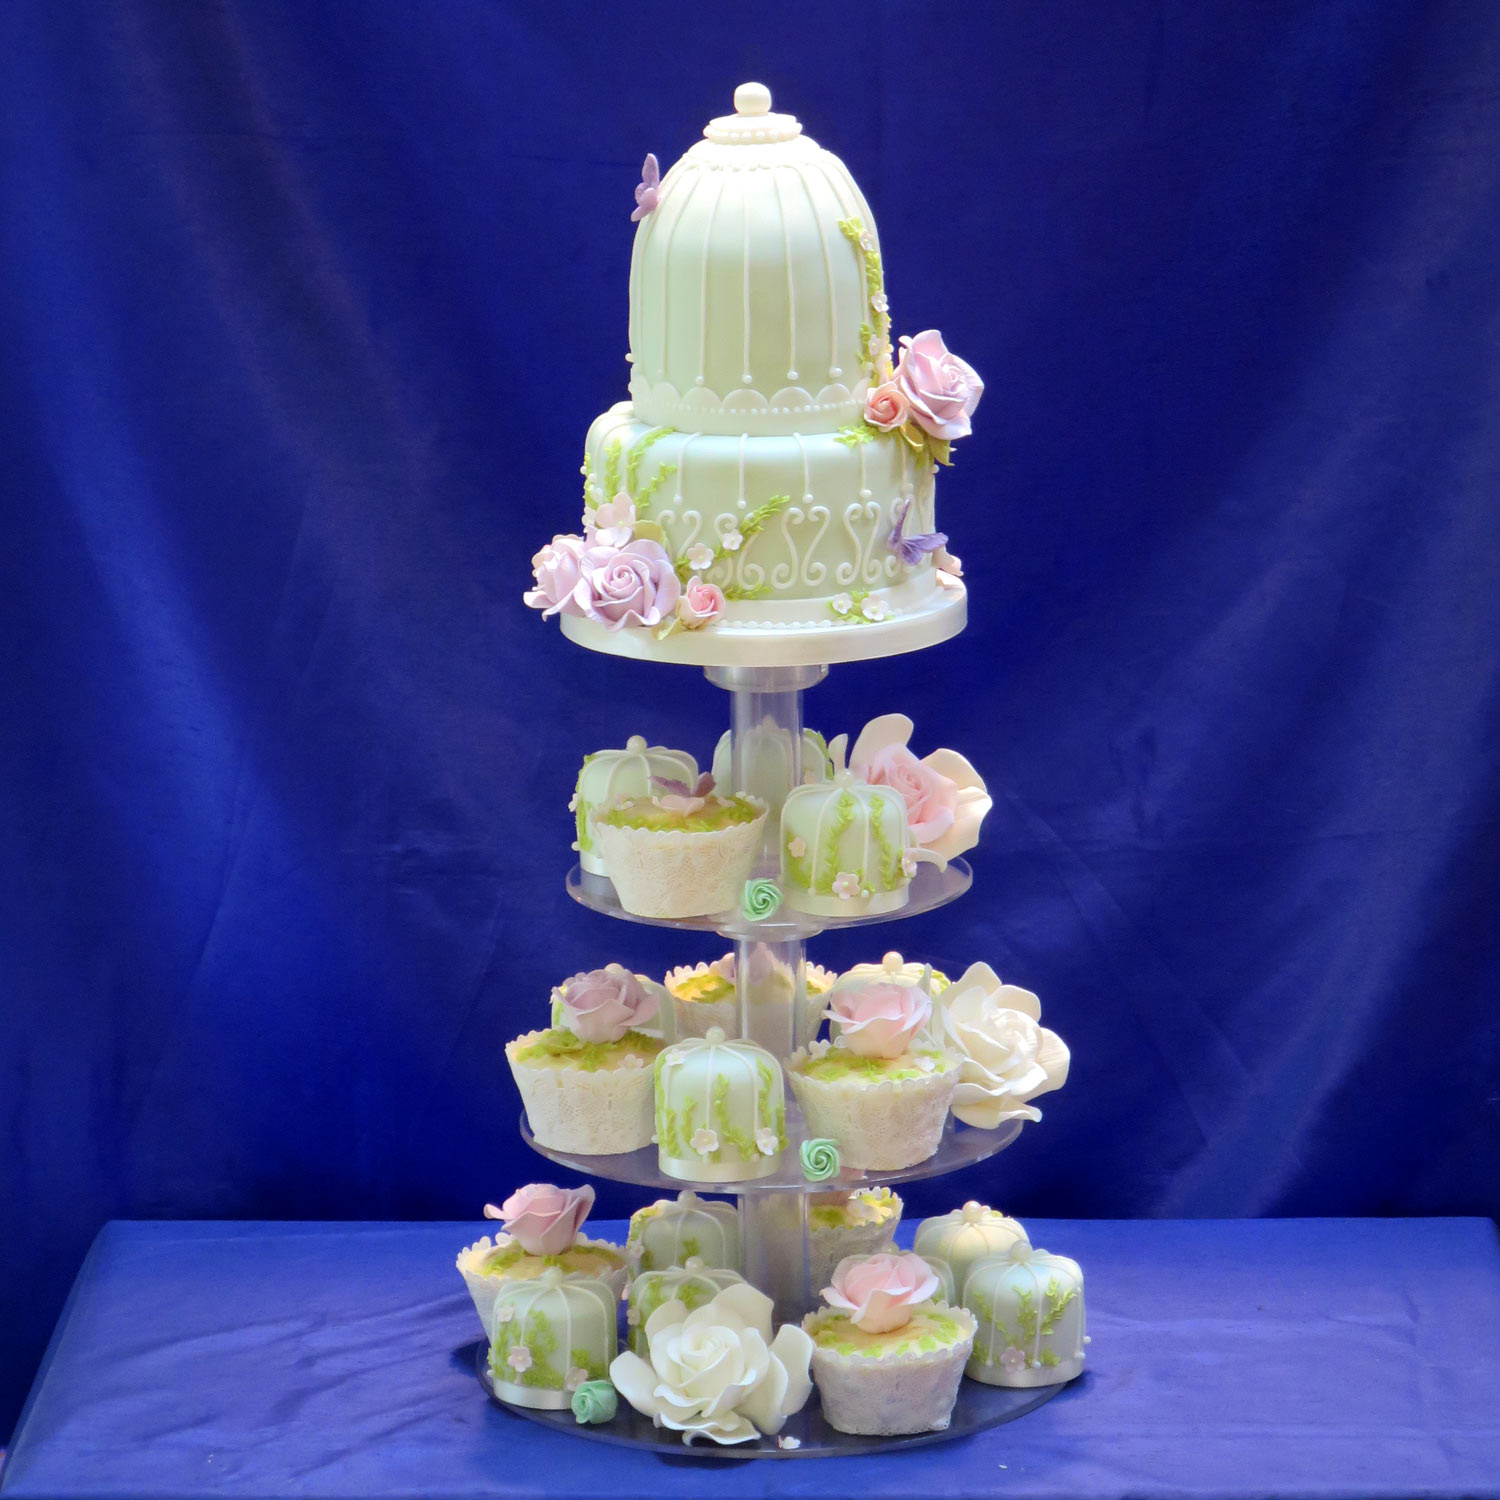 Birdcage Wedding Cake with Individual Mini Cakes